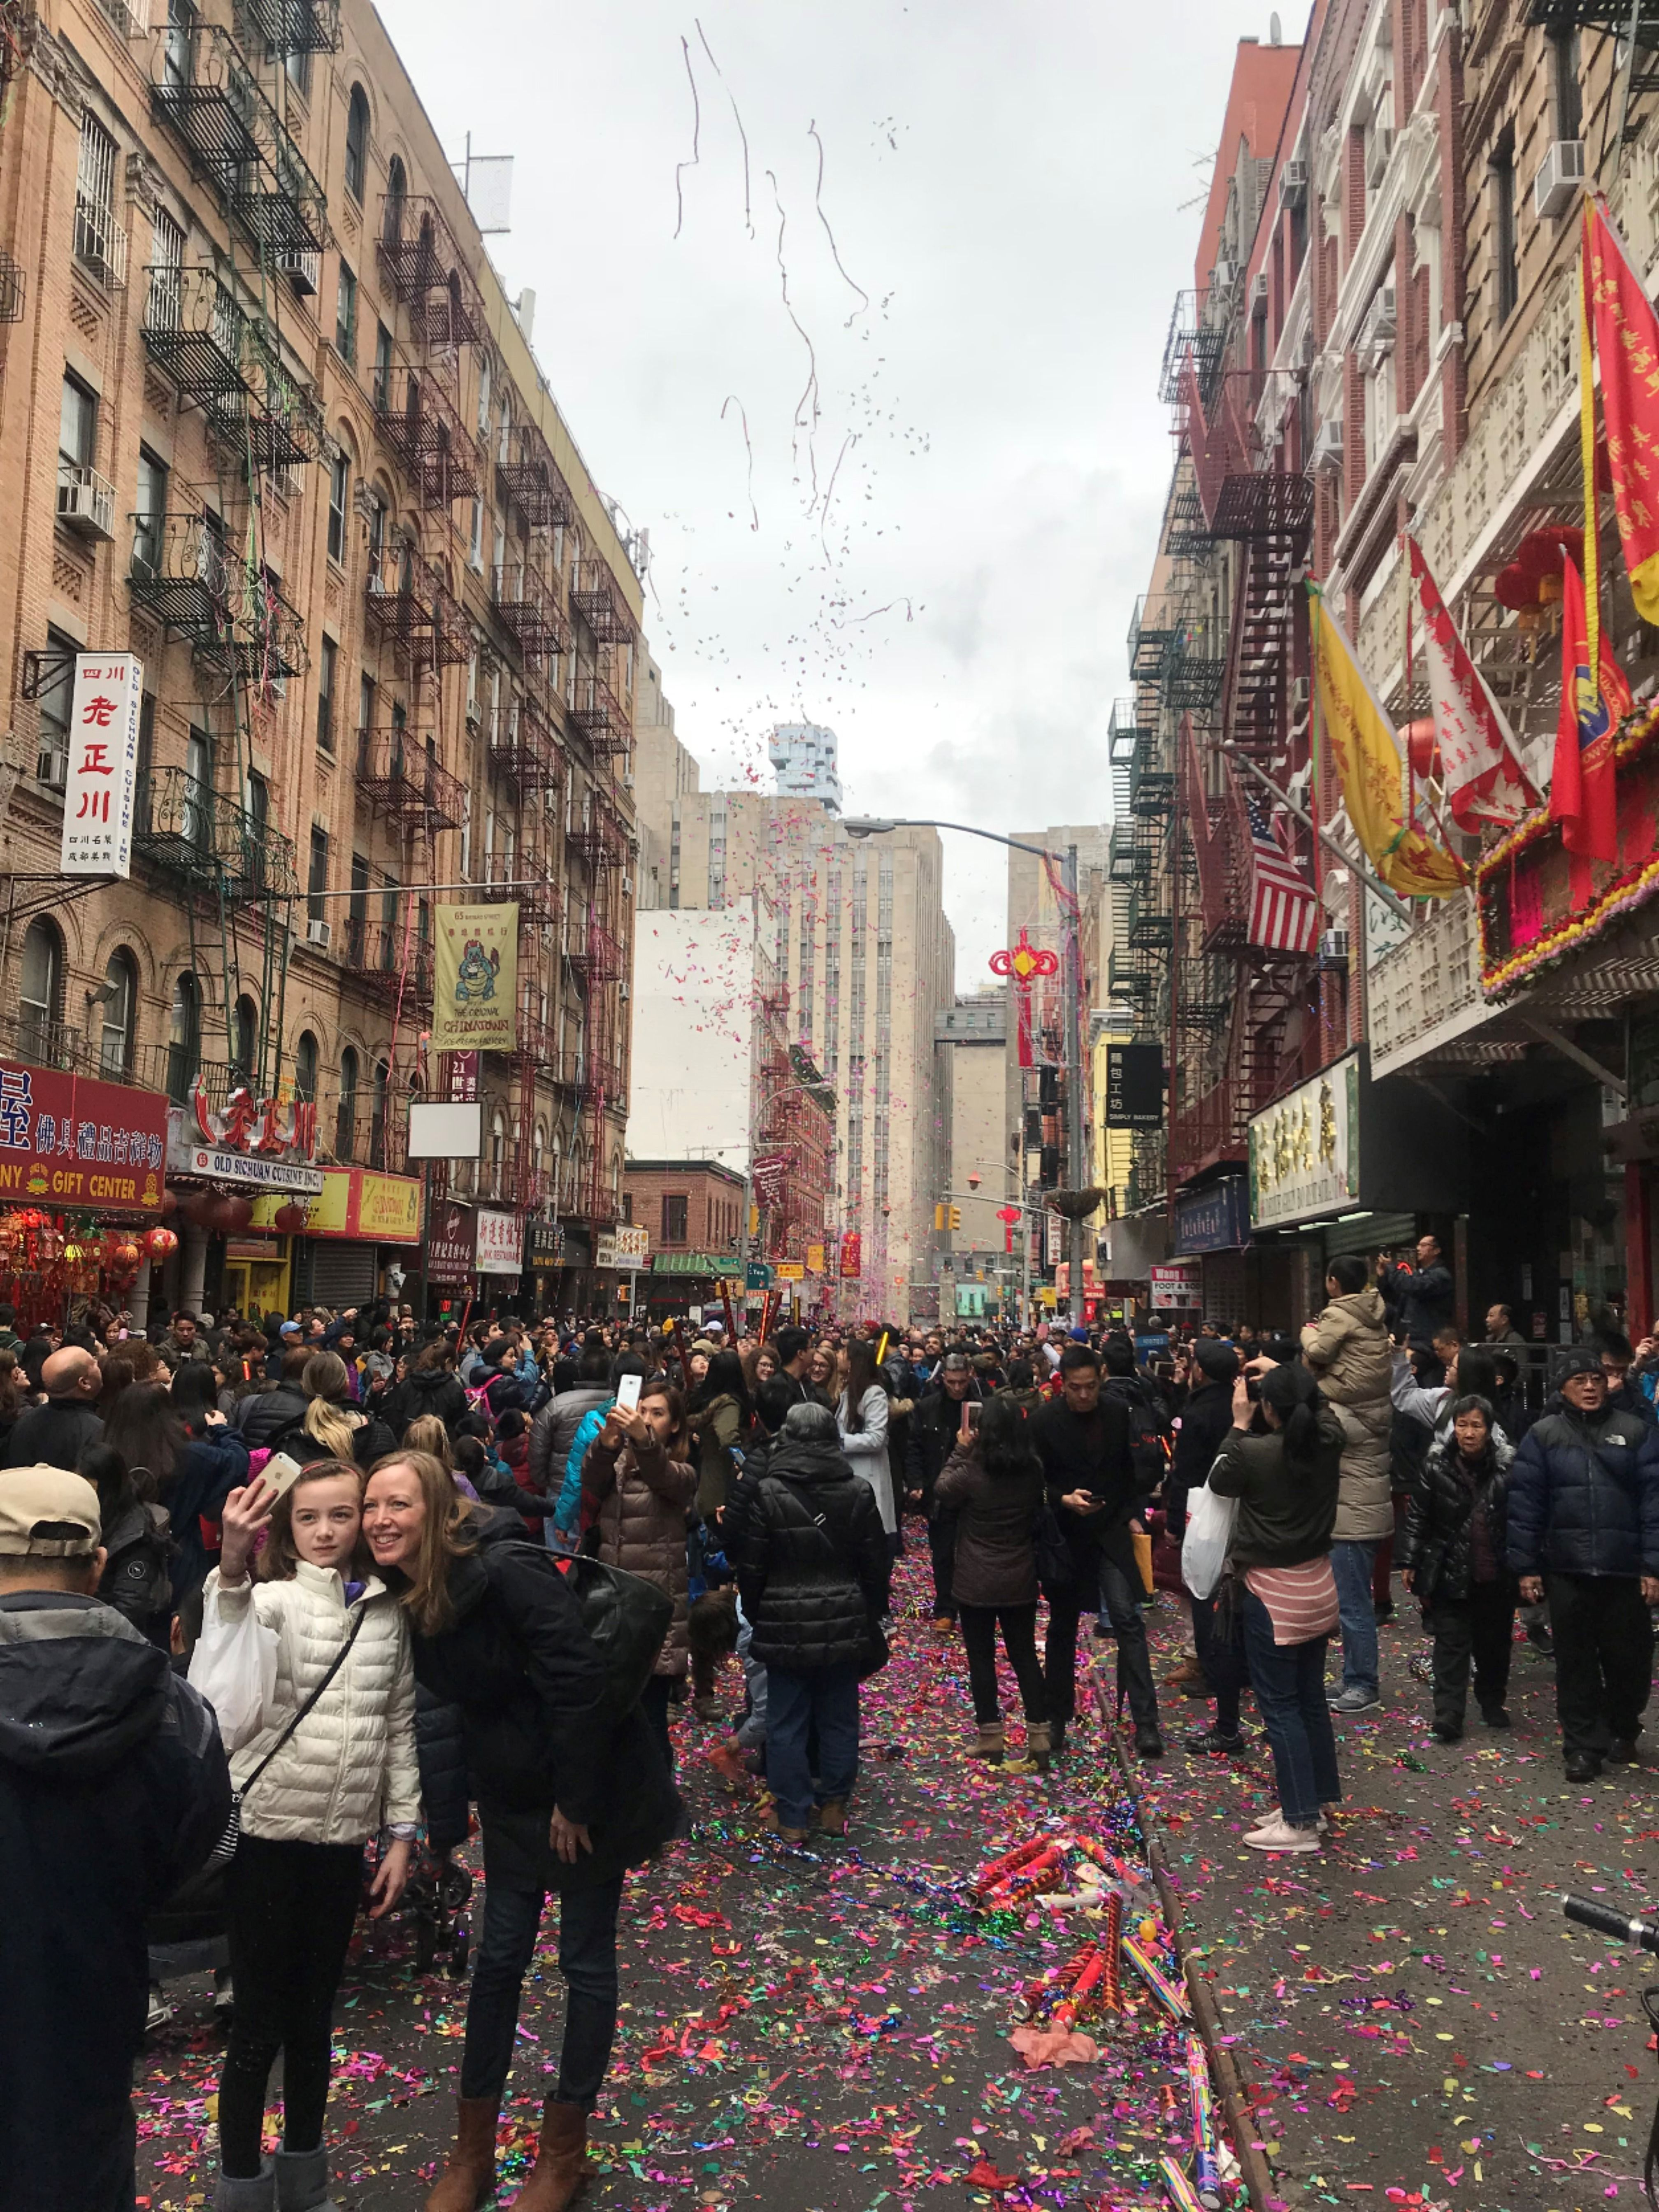 Come celebrate Chinese New Year with us on our Chinatown